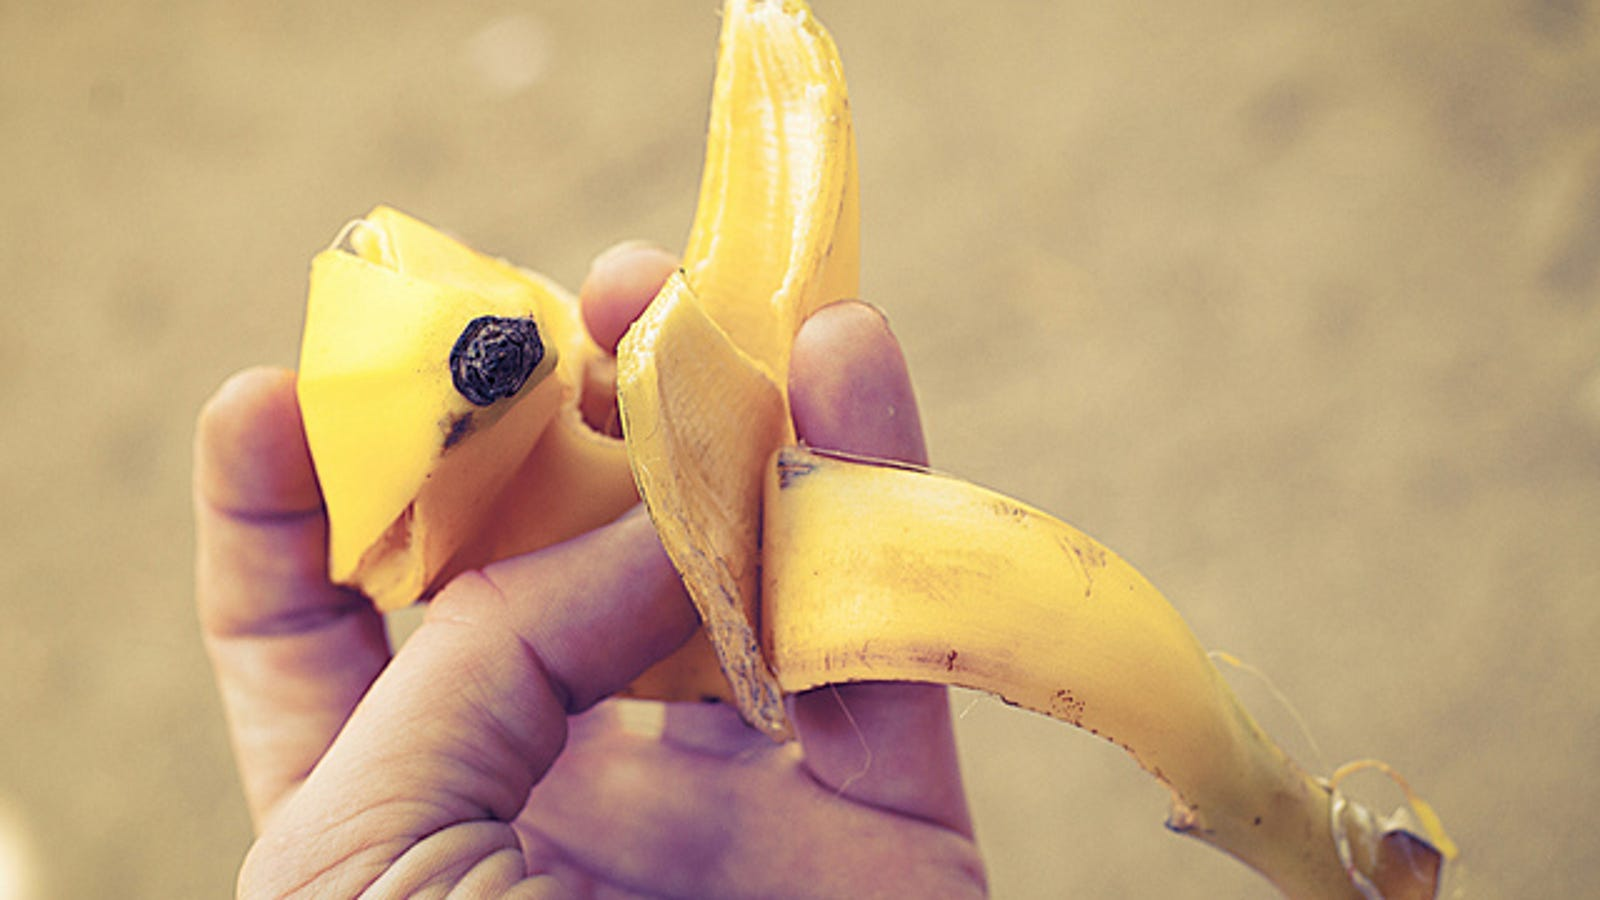 Things You Can Do With Banana Peels